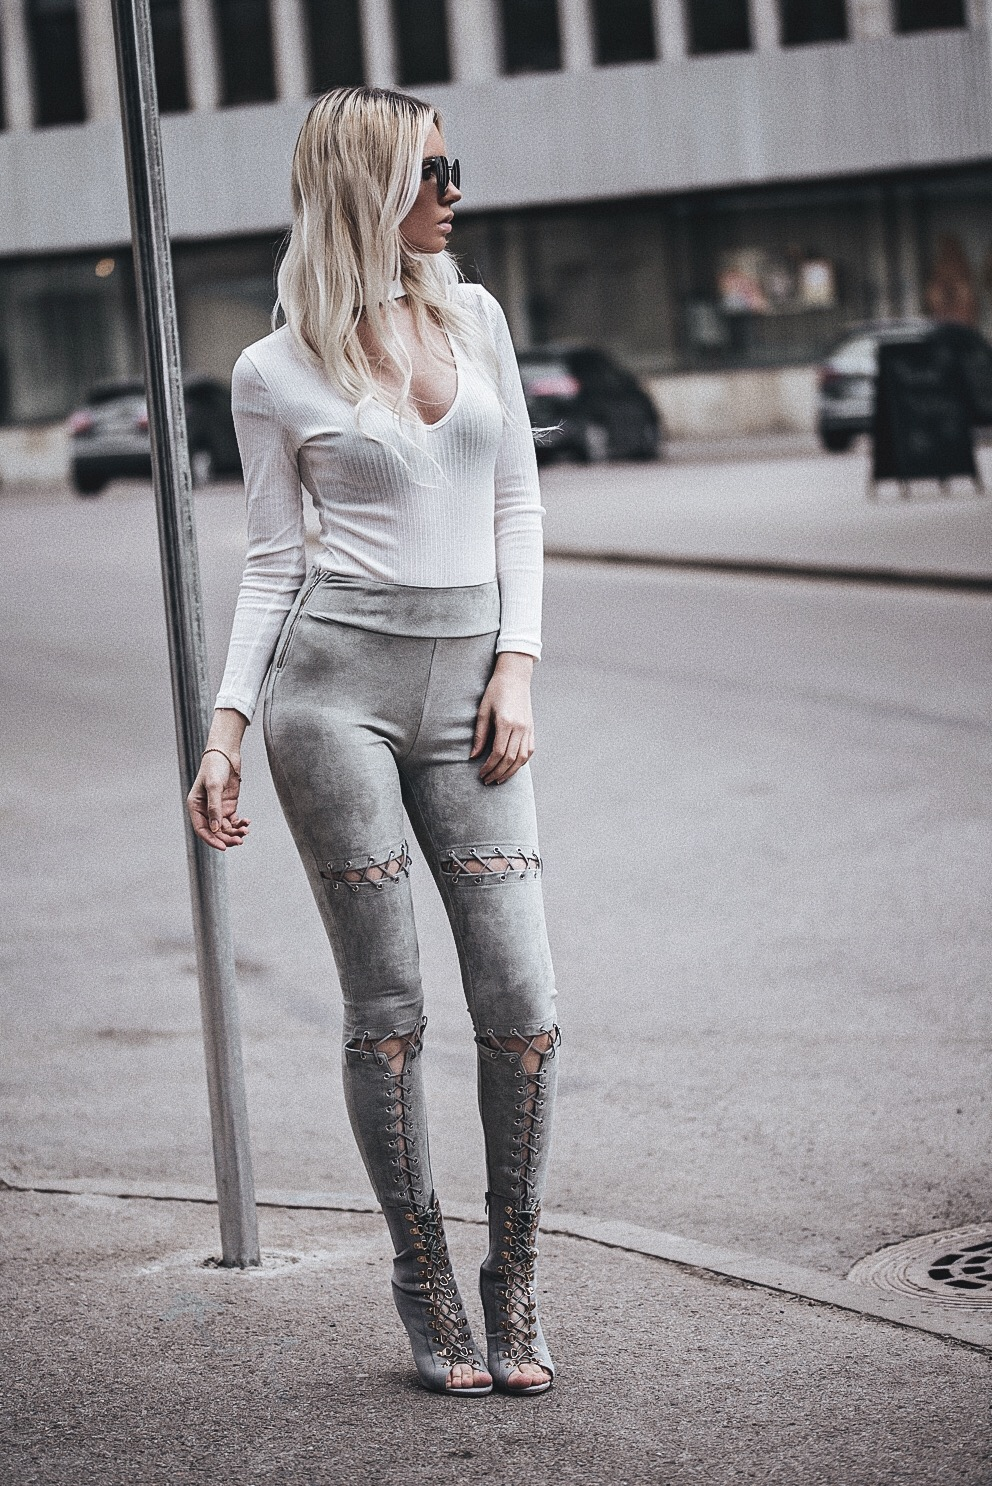 YES, that is the perfext legging !! GREAT!